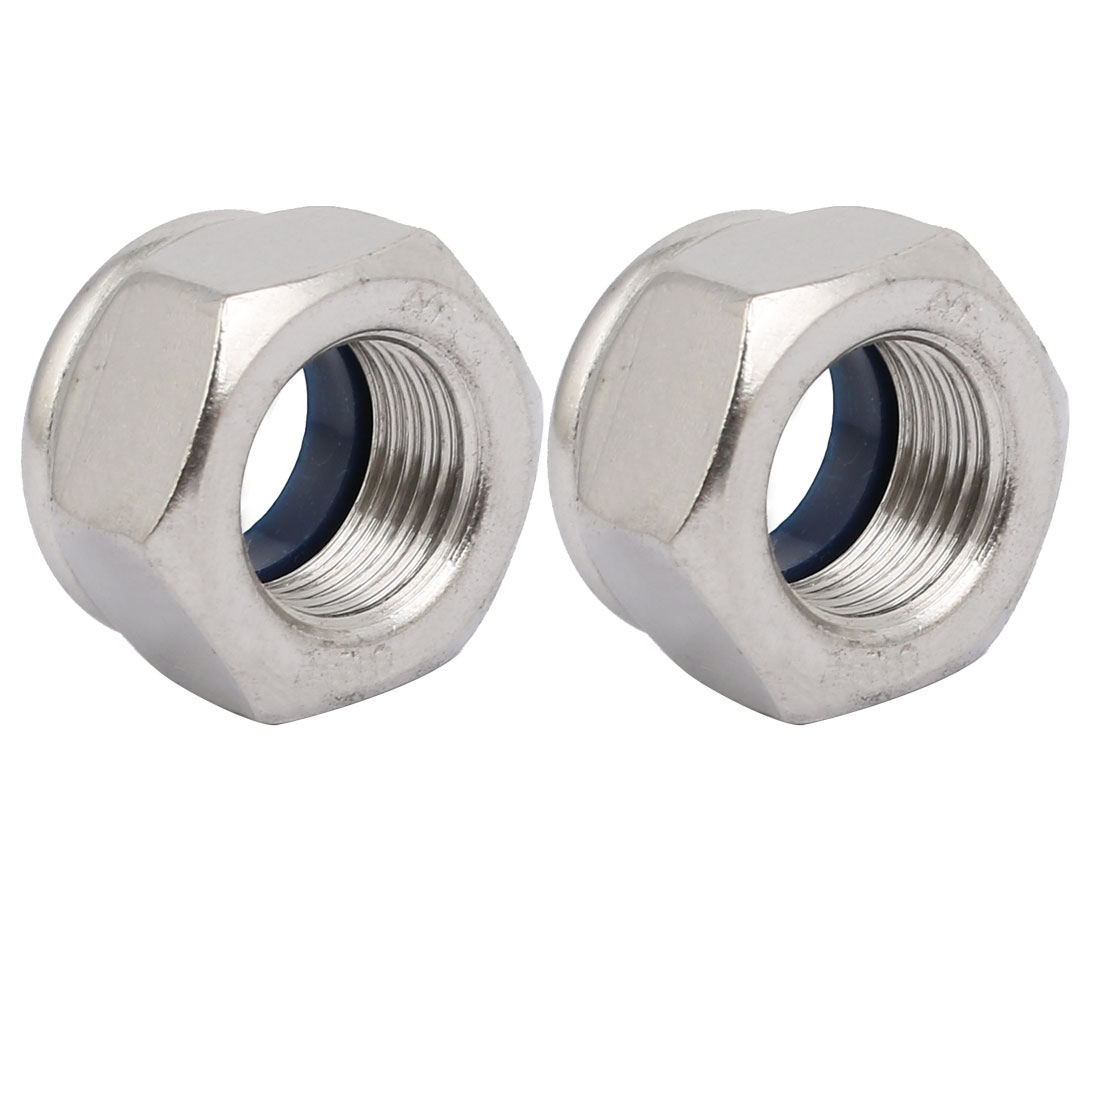 2pcs M16 x 1.5mm Pitch Metric Fine Thread 304 Stainless Steel Hex Lock Nuts